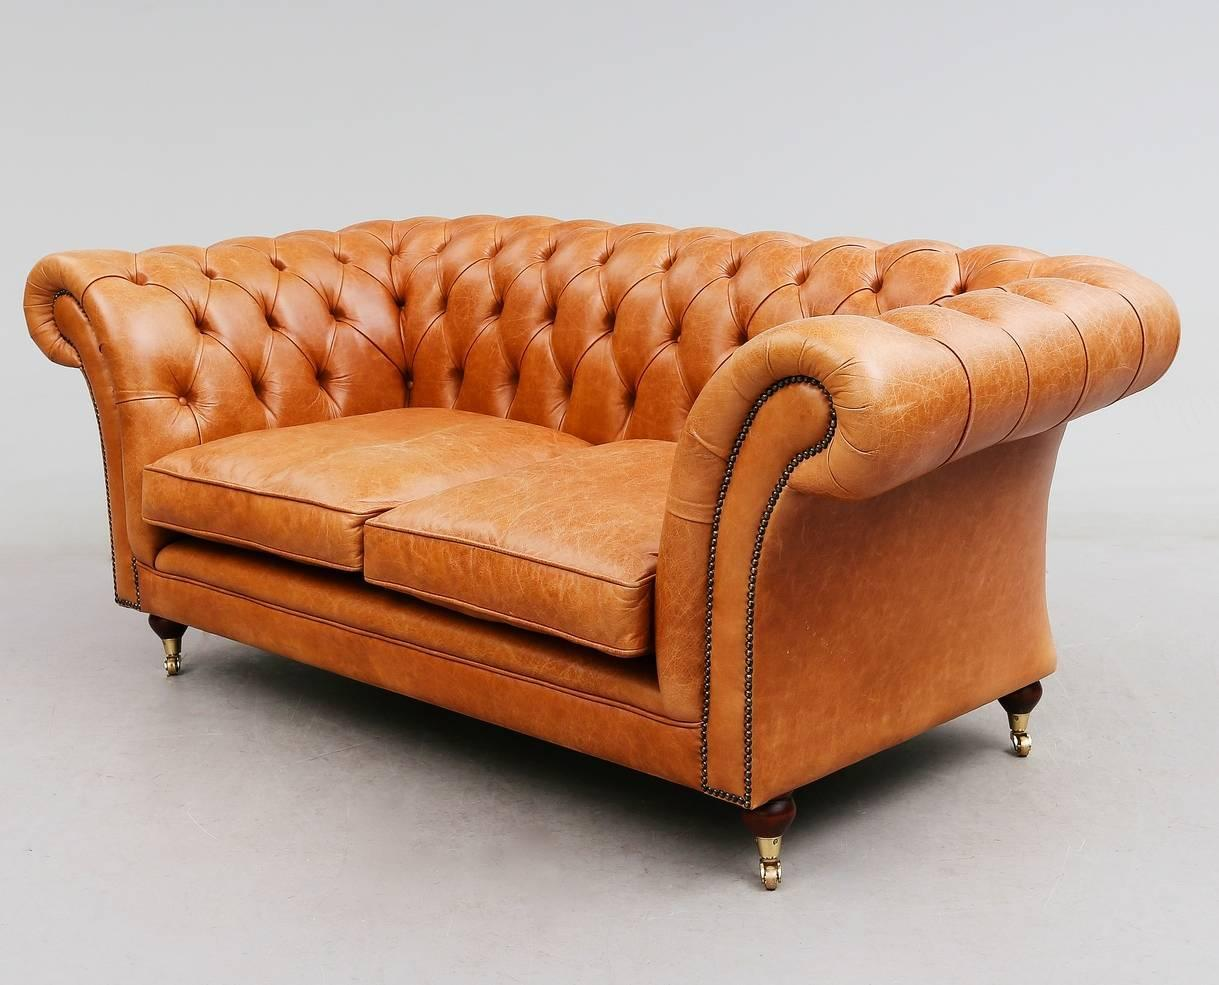 light brown leather chesterfield sofa for sale at 1stdibs